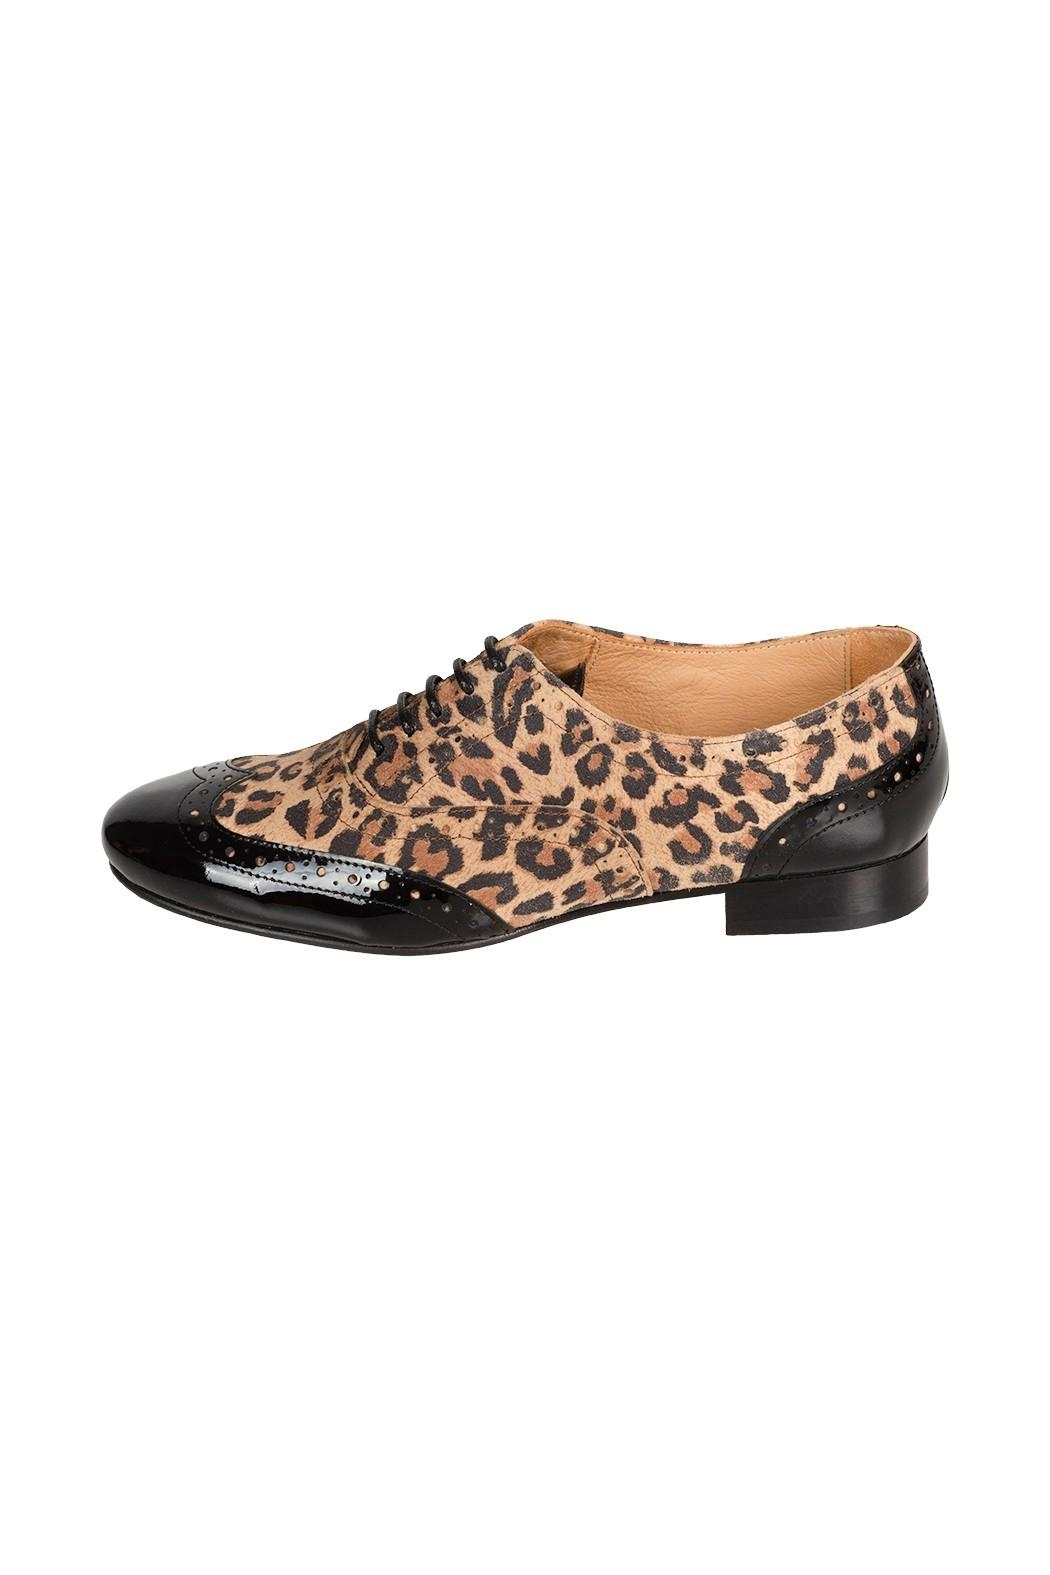 Pascucci Leopard Leather Brogue - Front Cropped Image